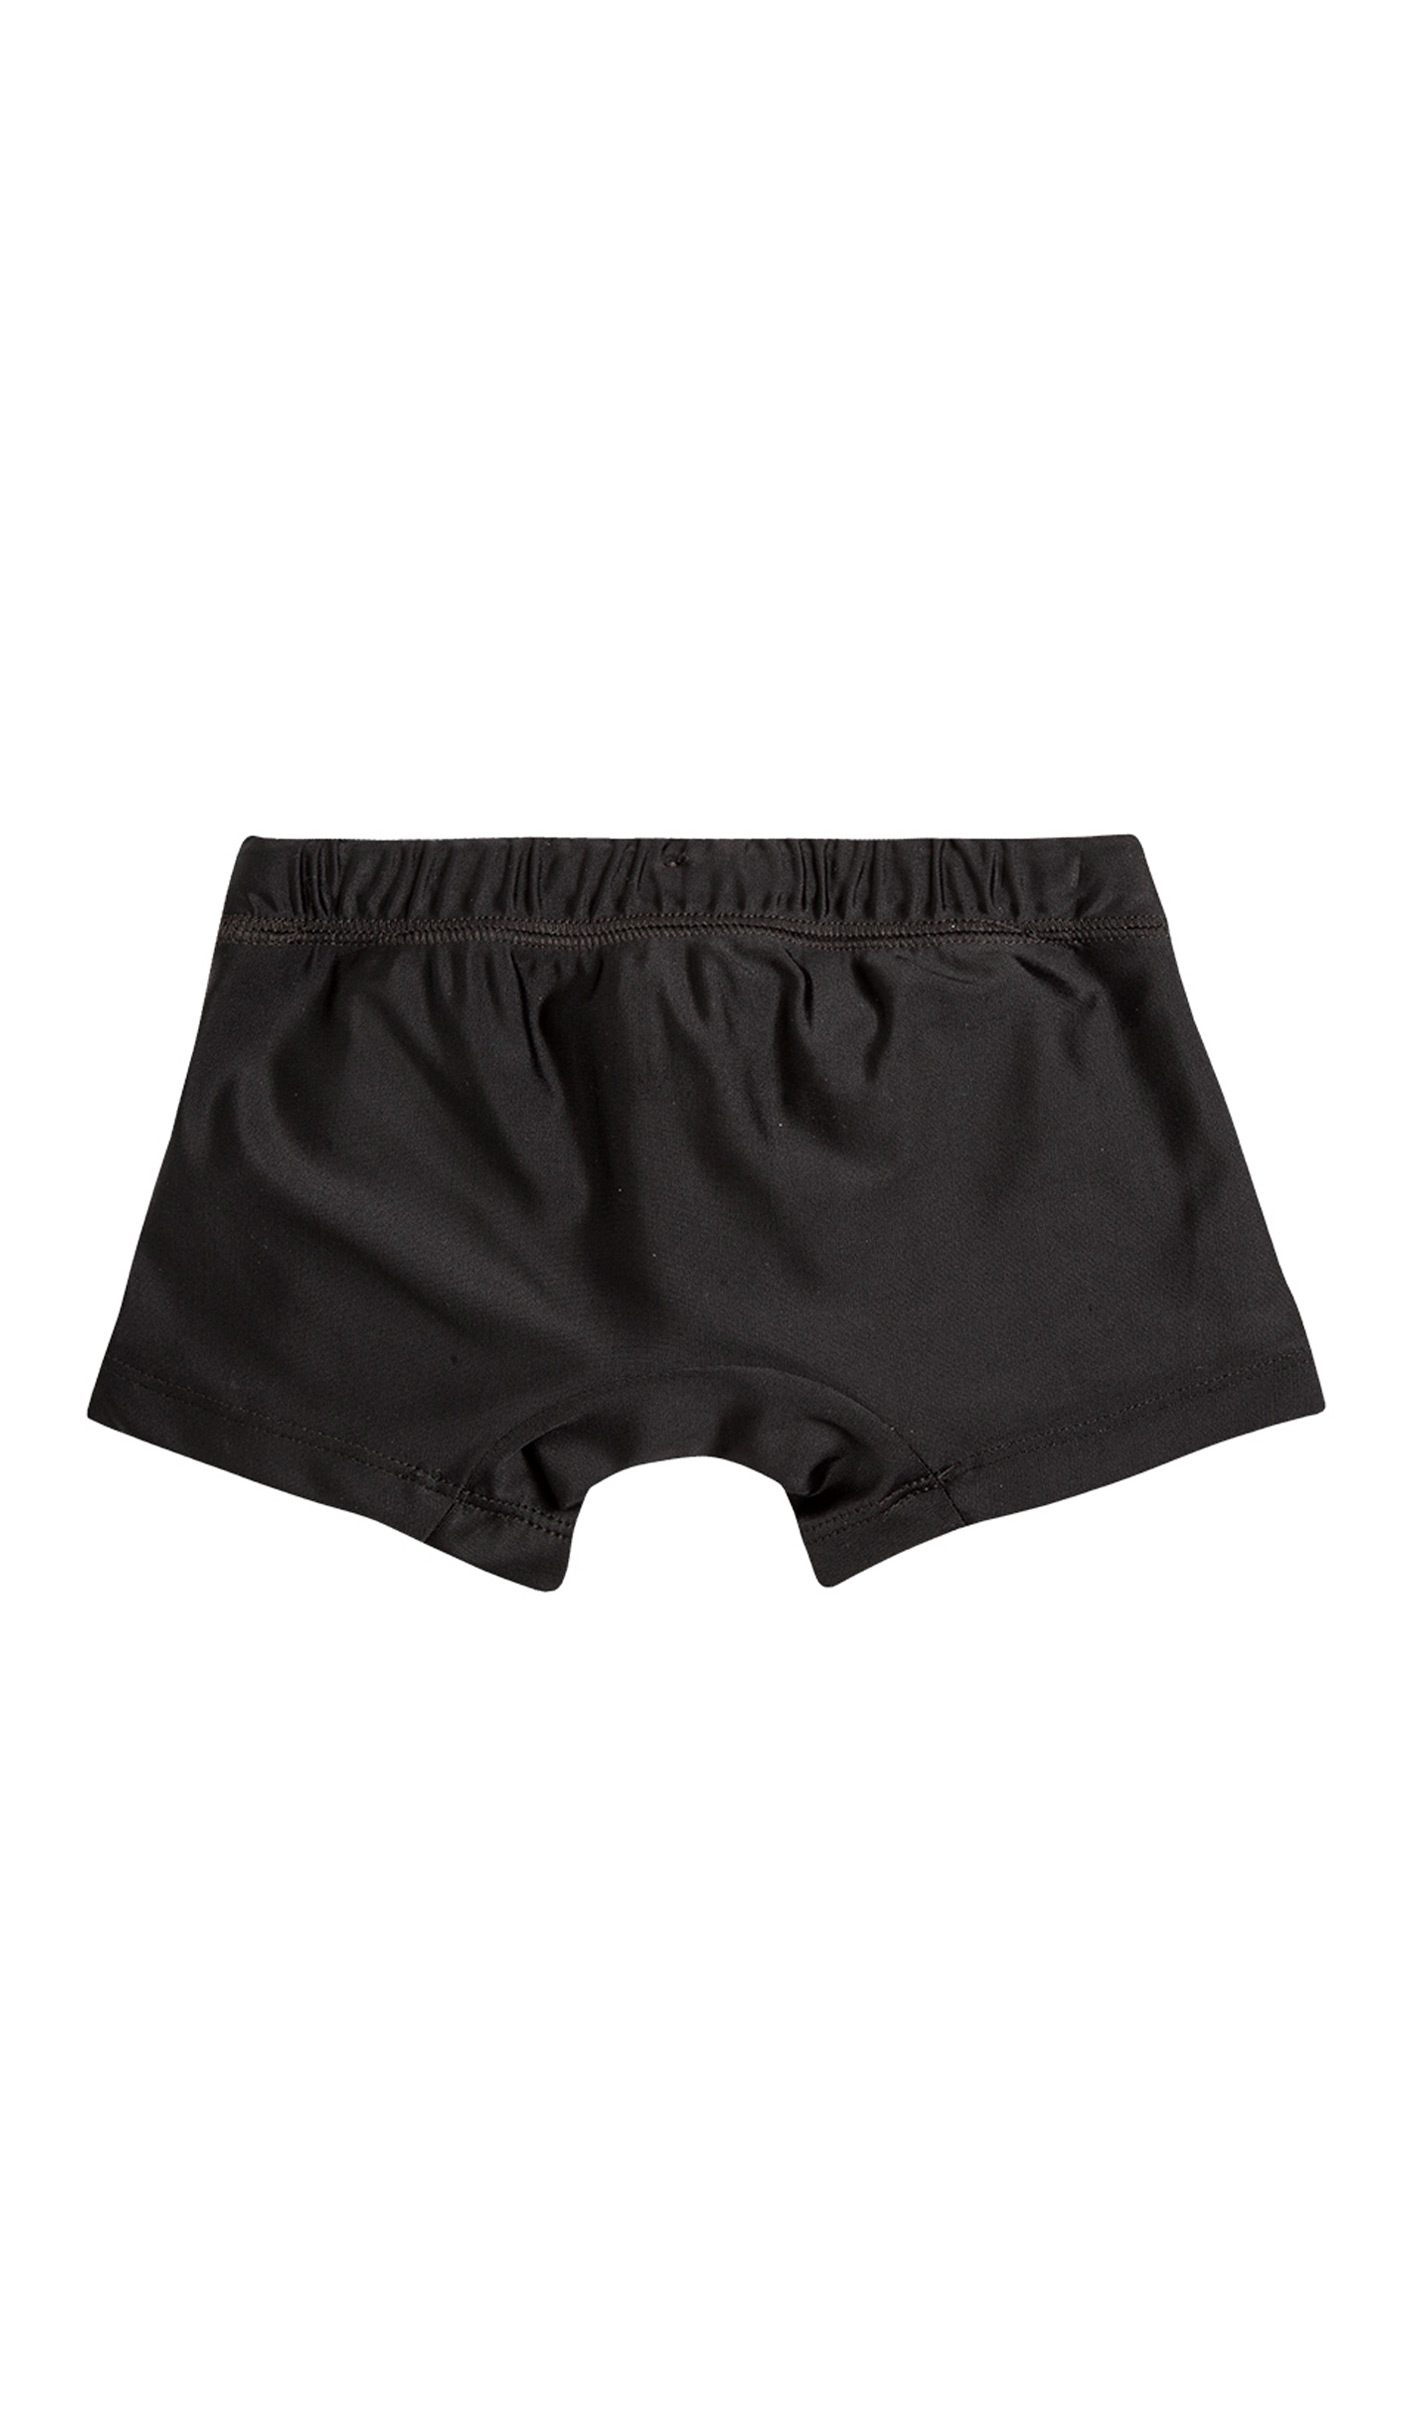 f87e402269 OFFCORSS - OFFCORSS Toddler Boy Swim Short Trunks UV Protection | Traje de  Baño para Niños - Walmart.com